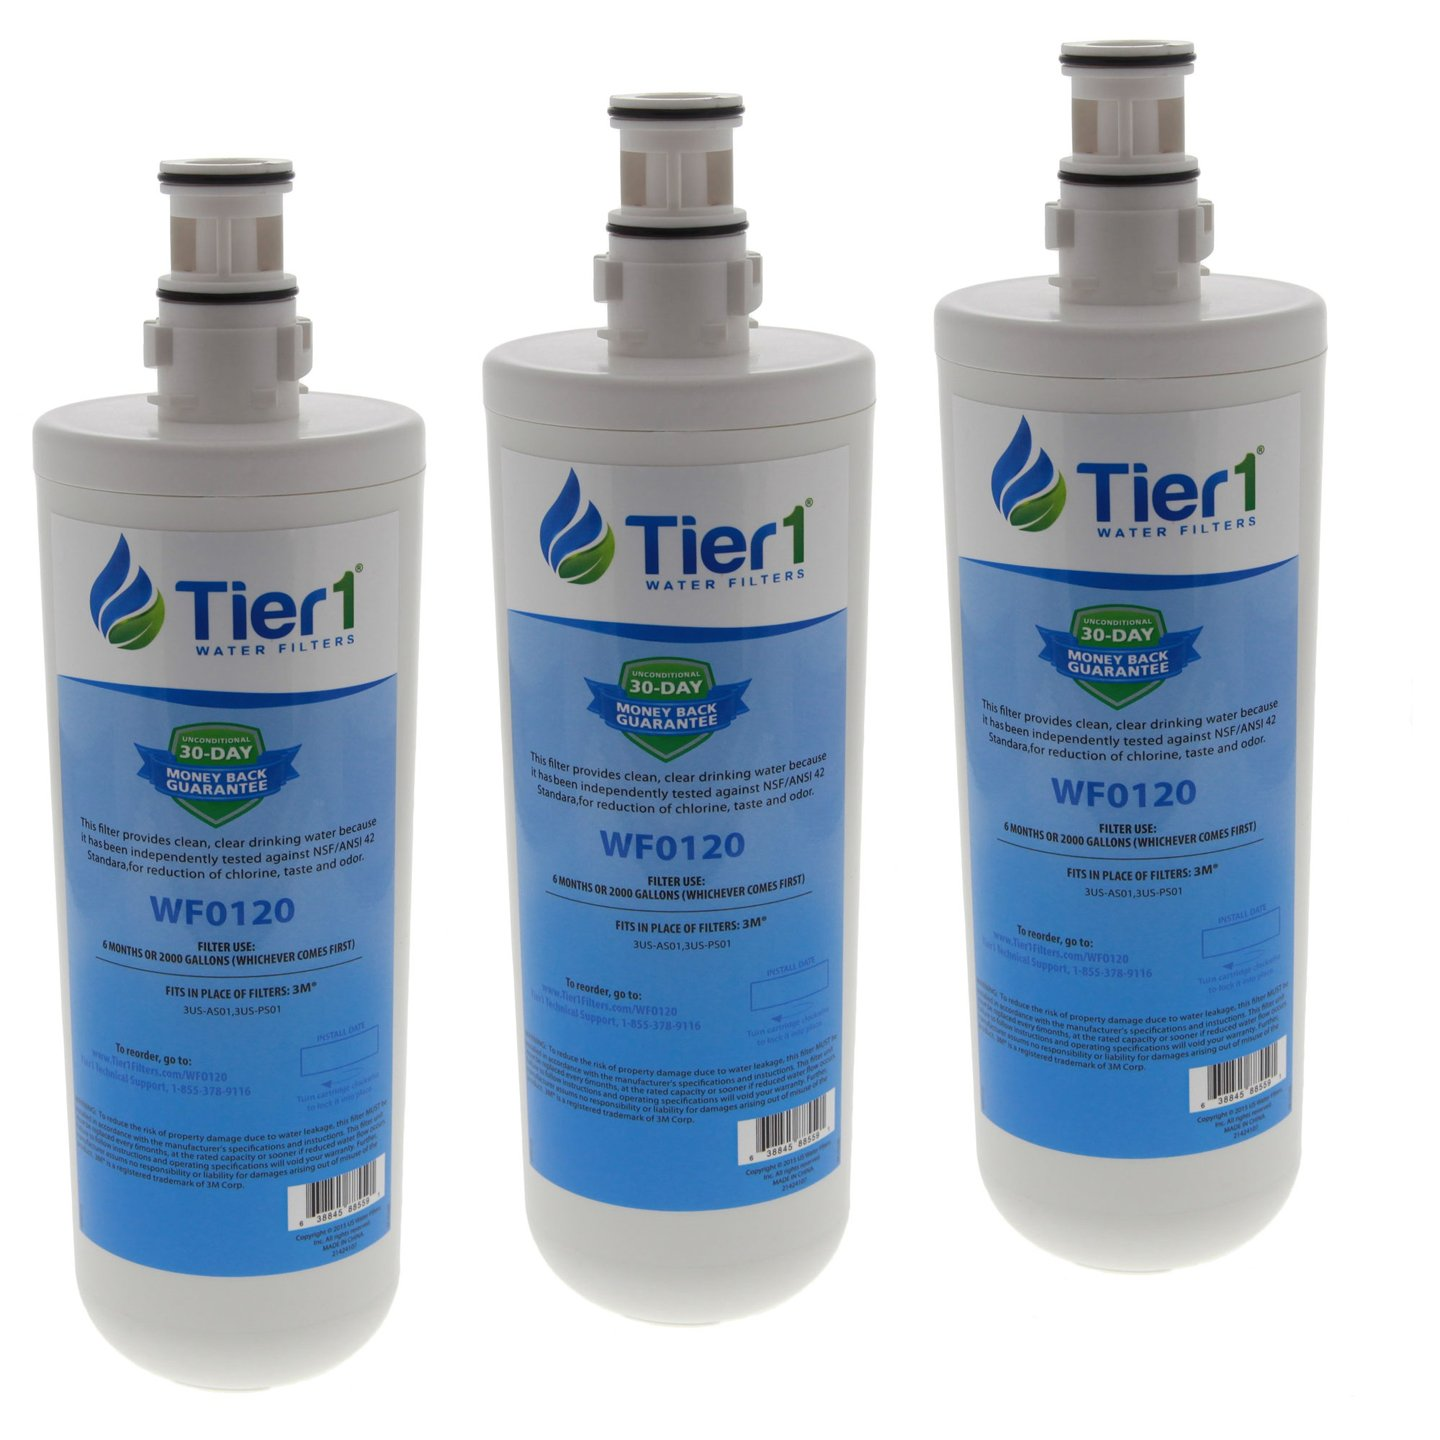 Tier1 Replacement for Filtrete 3US-AF01 Standard Water Filter 3 Pack